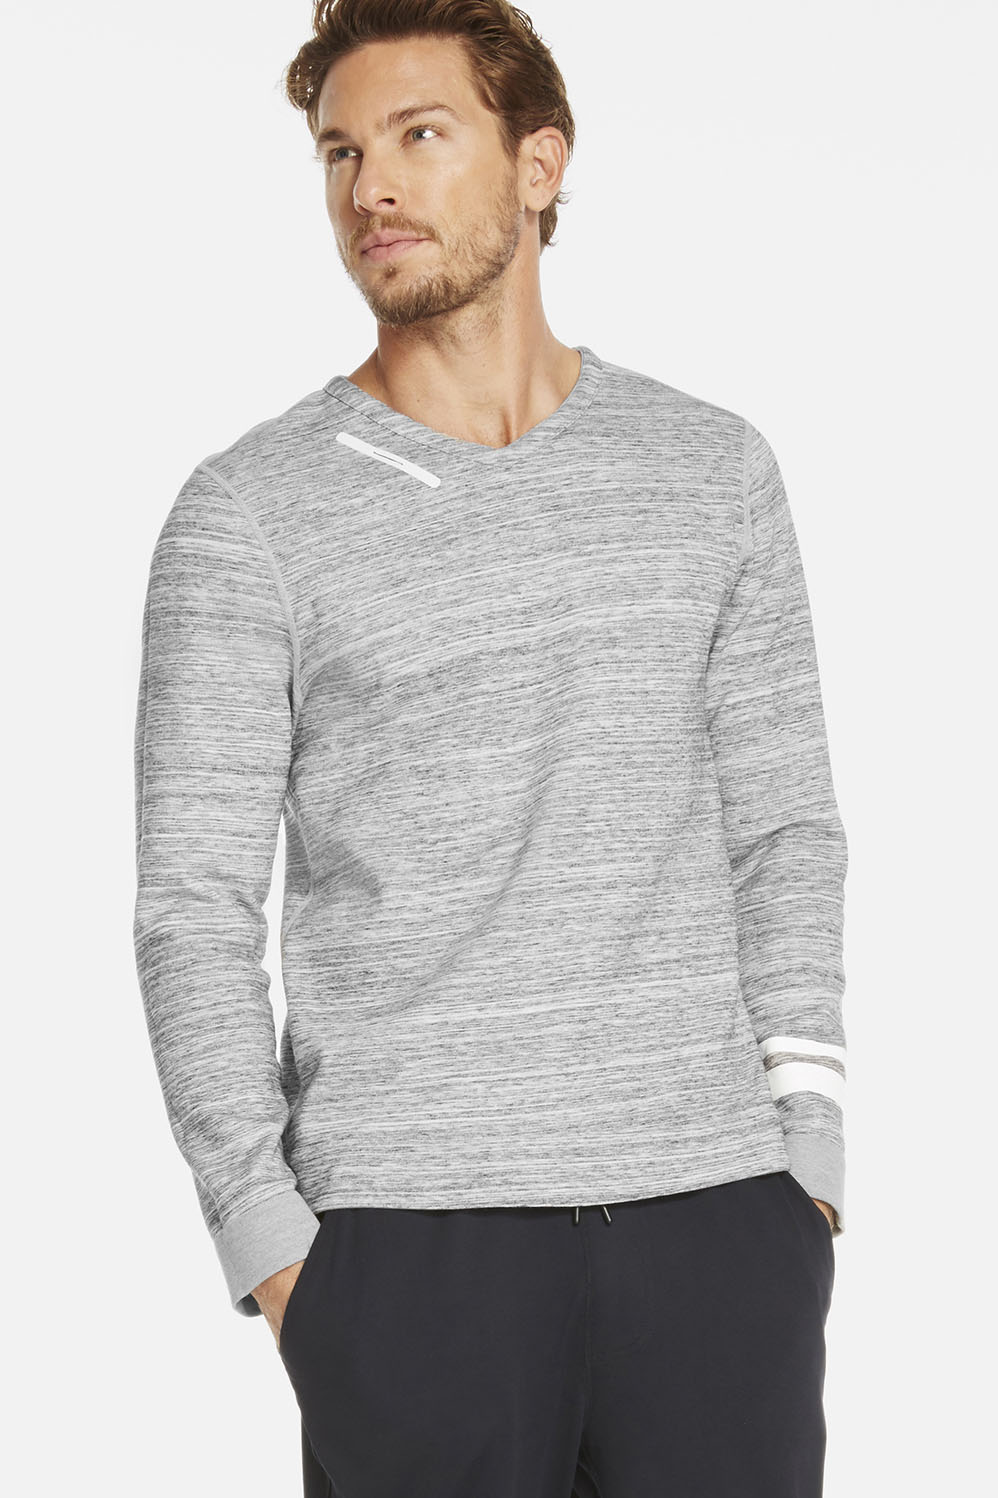 Why Its Good To Pull Over To Side Of >> Dual Side Reversible Pullover Fabletics